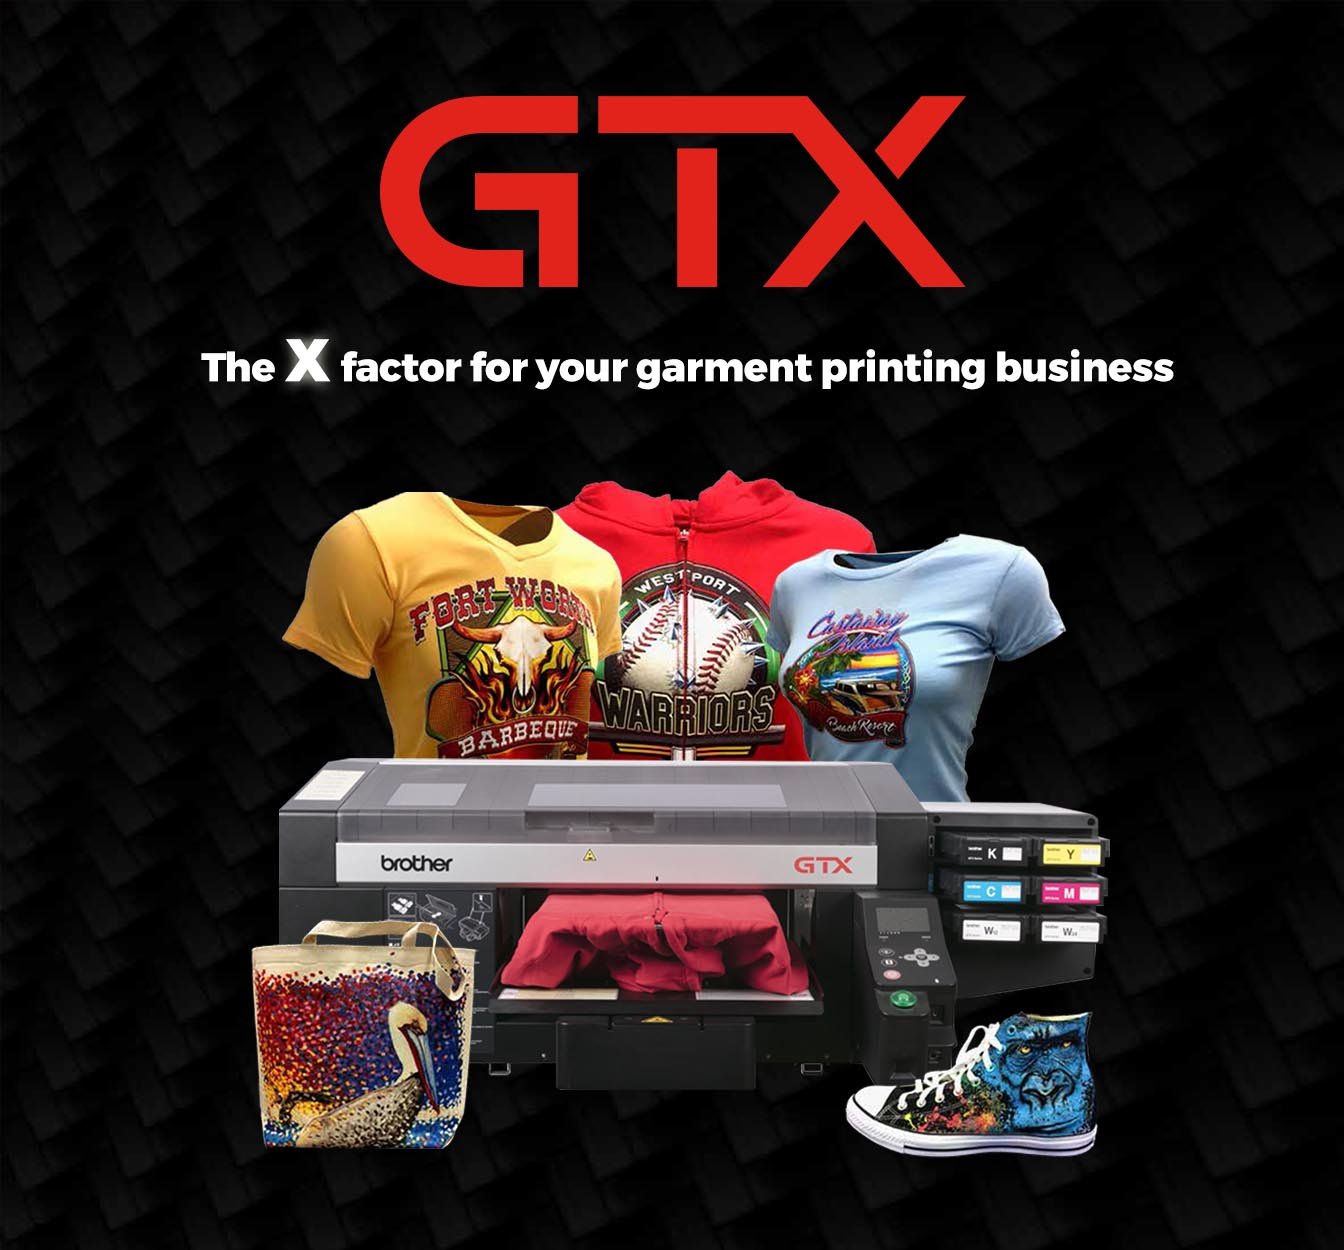 GTX - The X factor for your garment printing business